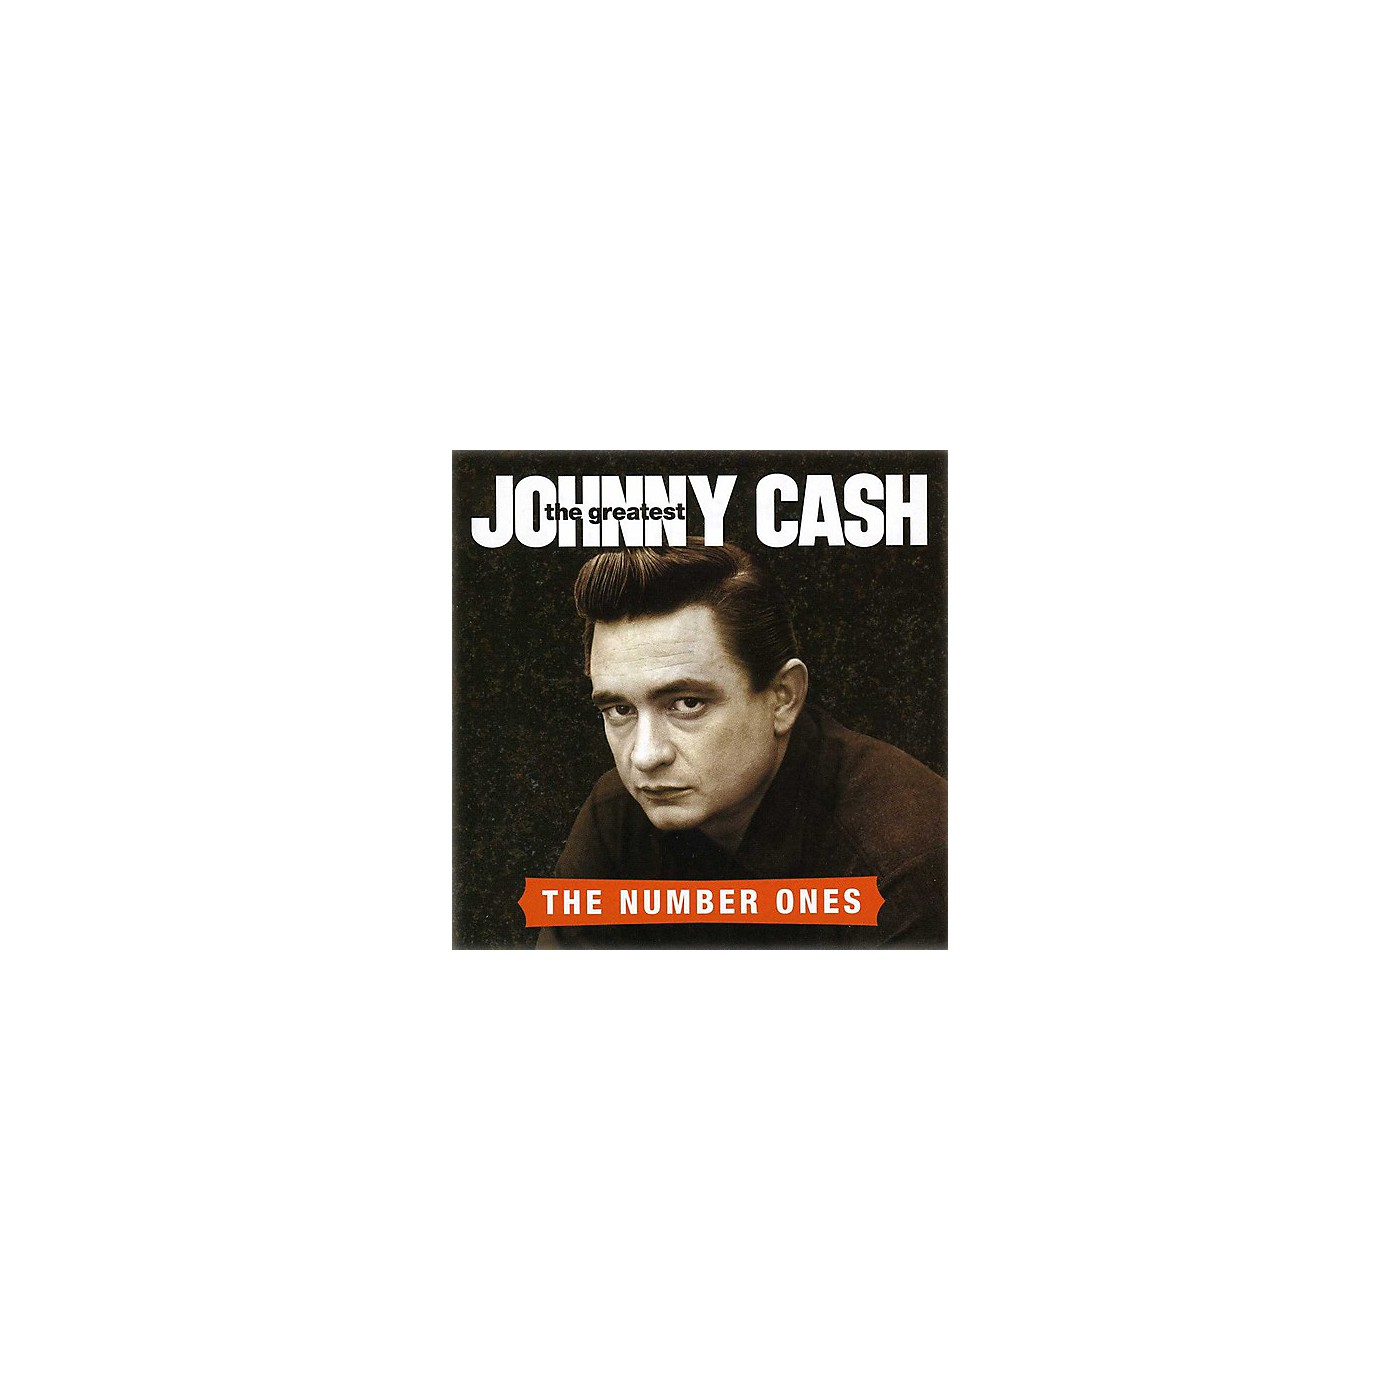 Alliance Johnny Cash - The Greatest: Number One's (CD) thumbnail